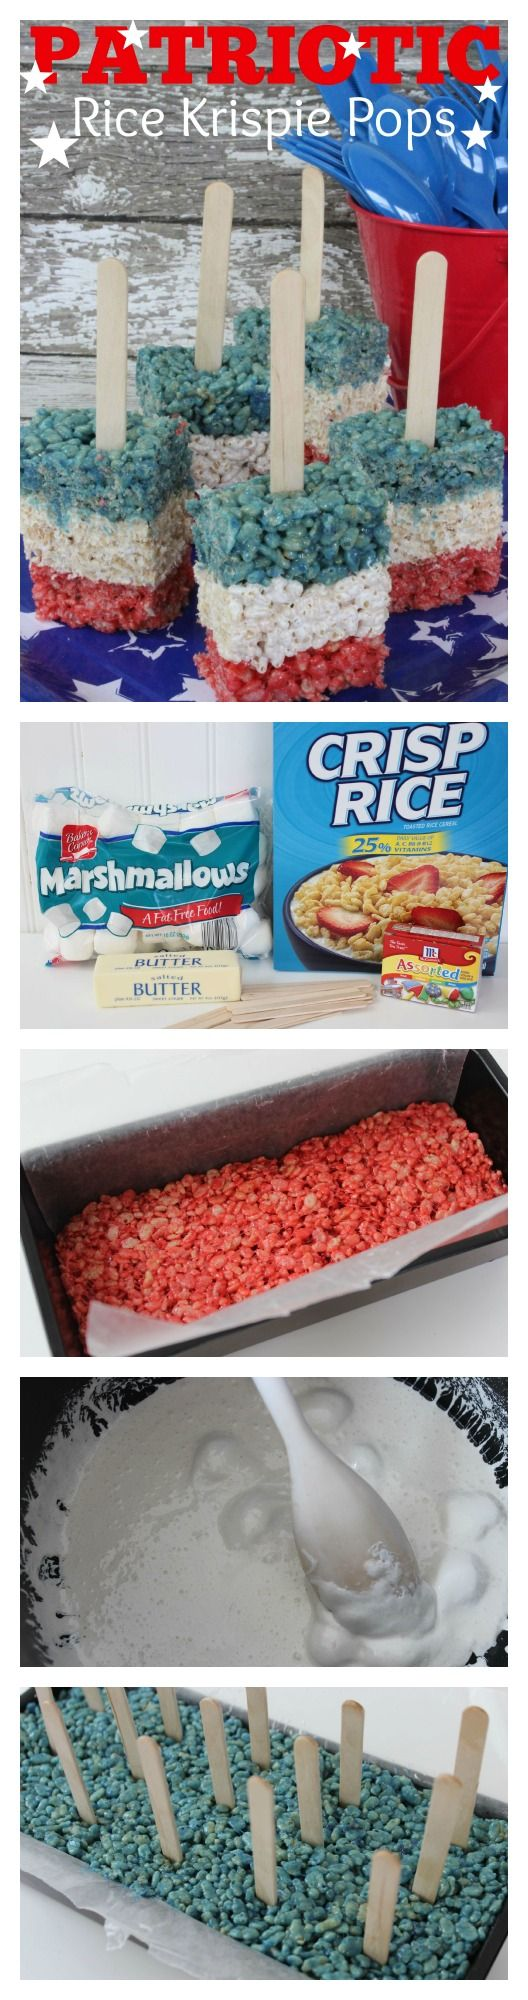 Patriotic Rice Krispie Pops Recipe. This Red, White & Blue Food idea is a perfect July 4th recipe or memorial day idea for kids. It is so easy to make and only has a couple ingredients!